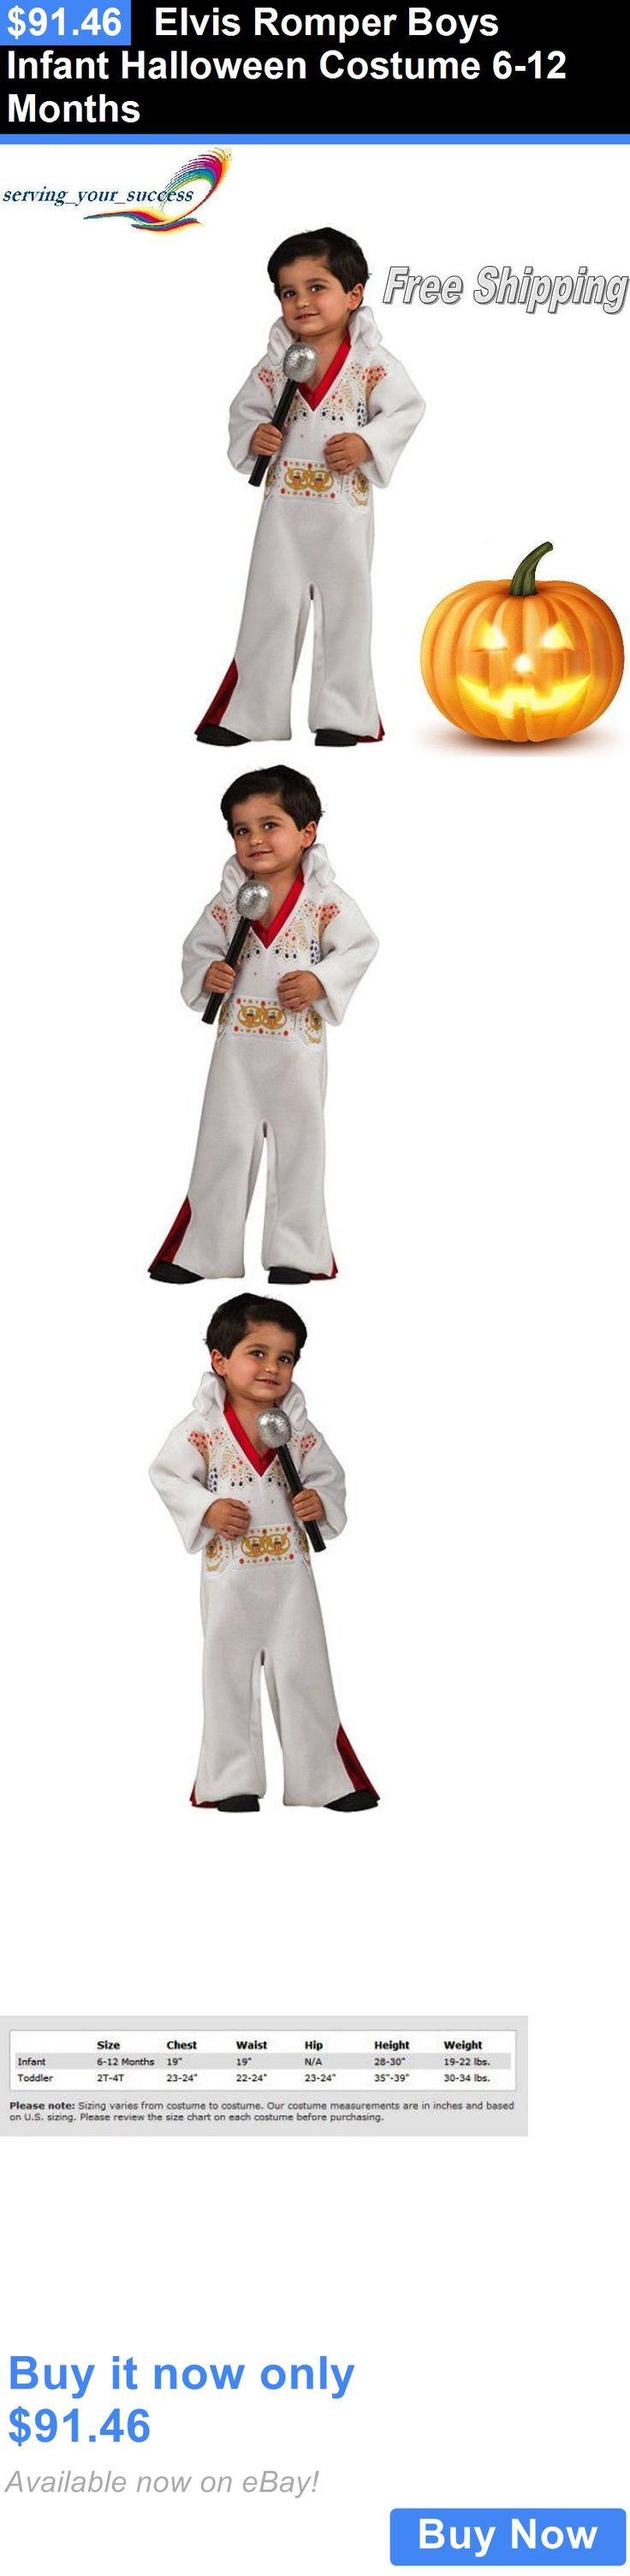 Halloween Costumes Kids: Elvis Romper Boys Infant Halloween Costume 6-12 Months BUY IT NOW ONLY: $91.46